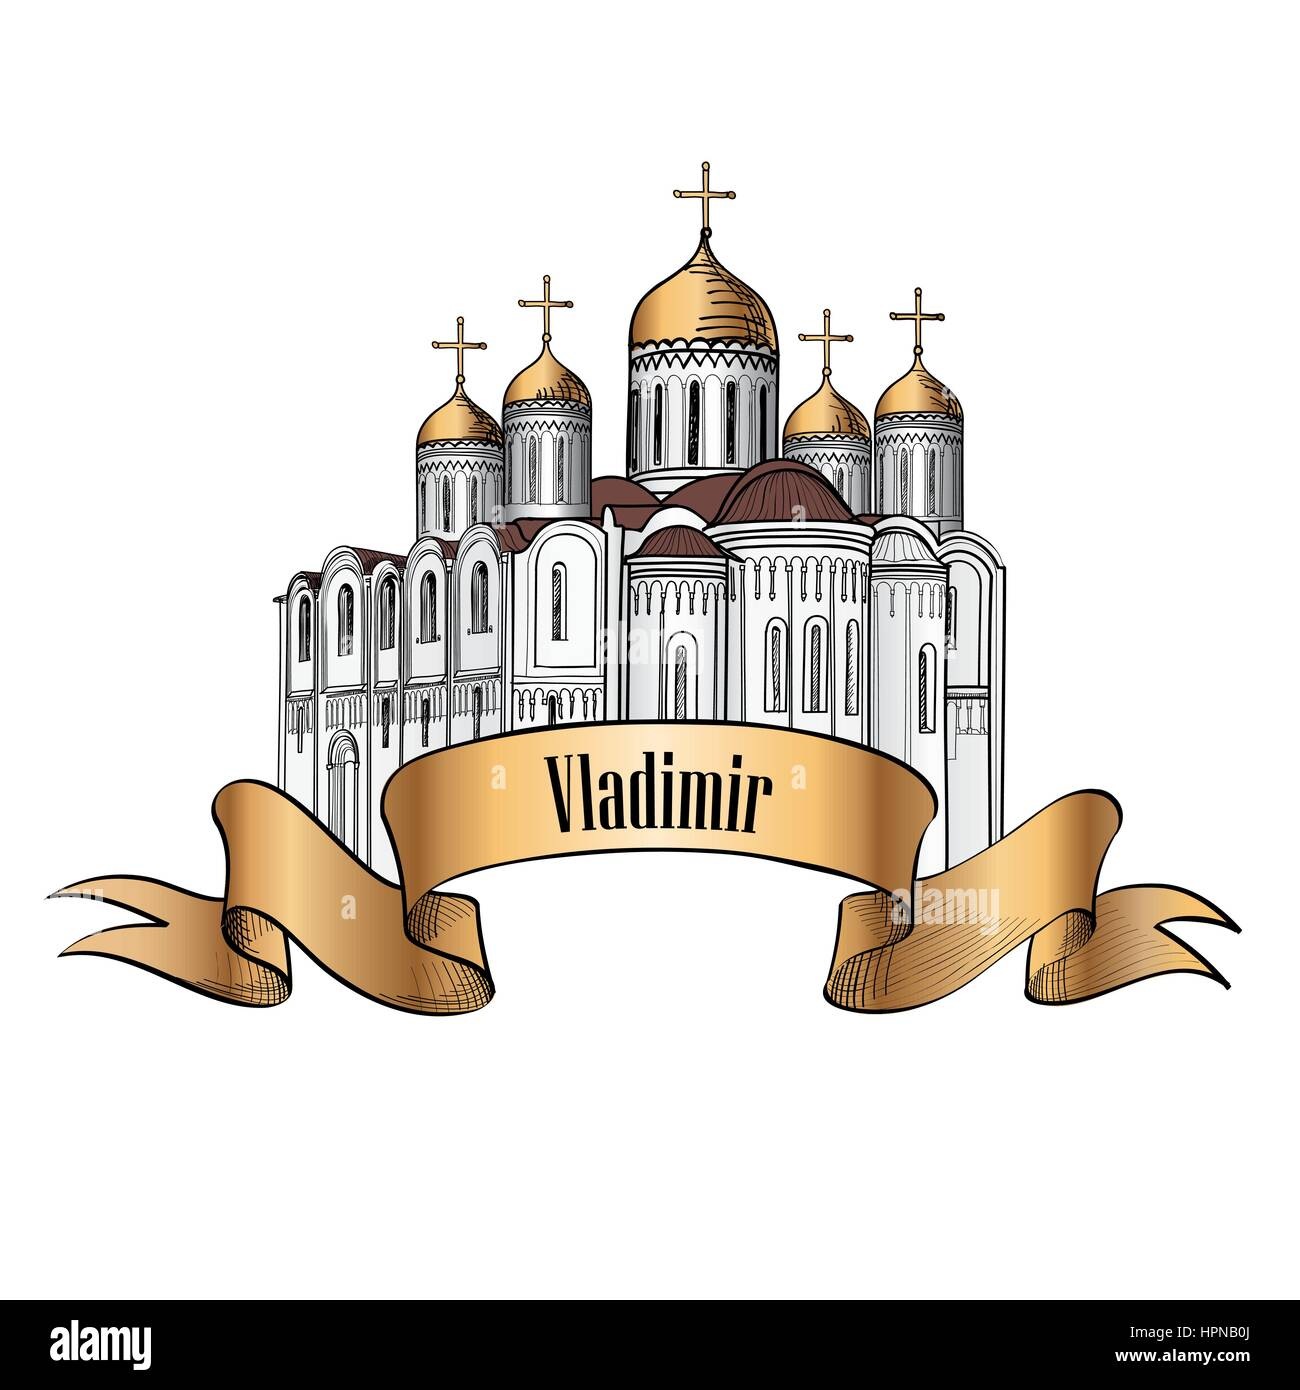 Dormition Cathedral in Vladimir. Ancient russian city symbol. Travel Russia icon. Hand drawn sketch cathedral. - Stock Image